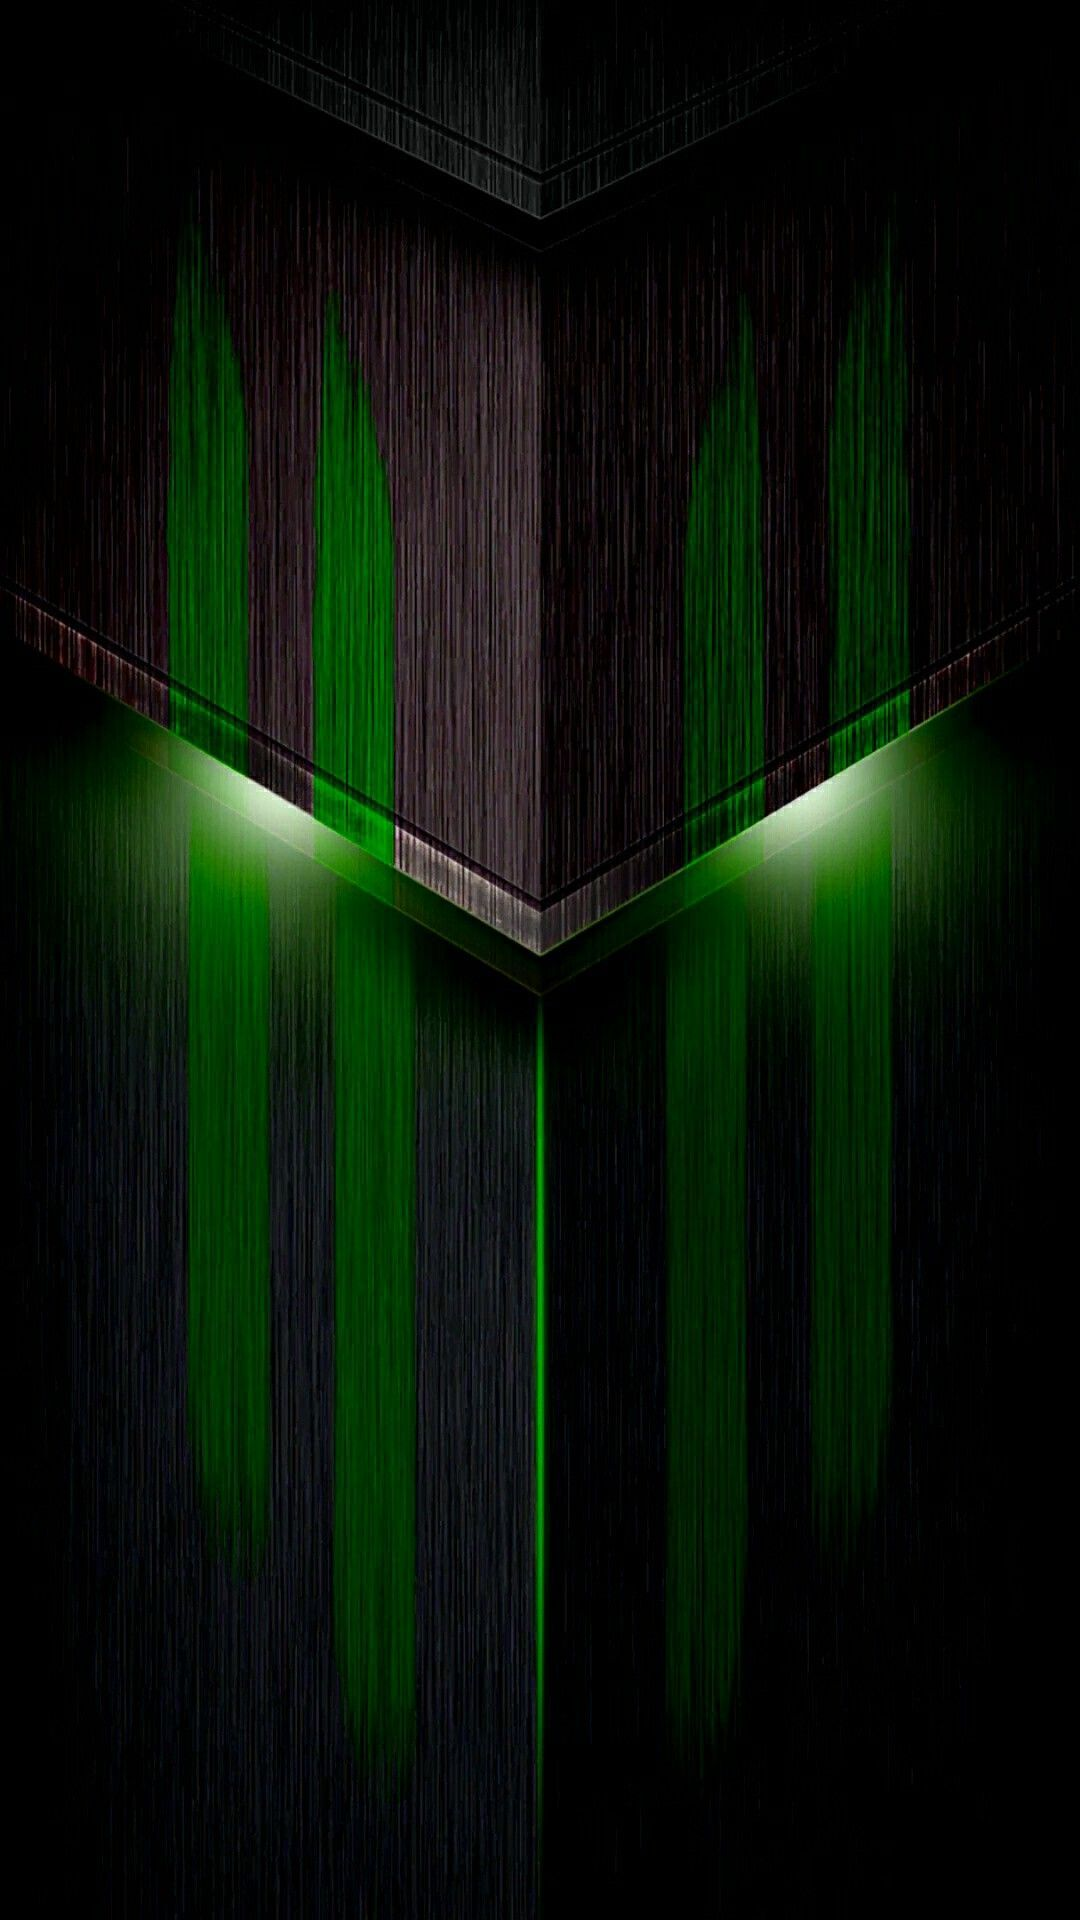 Gaming Black And Green Background Image Oneplus Wallpapers Phone Wallpaper Design Green Wallpaper